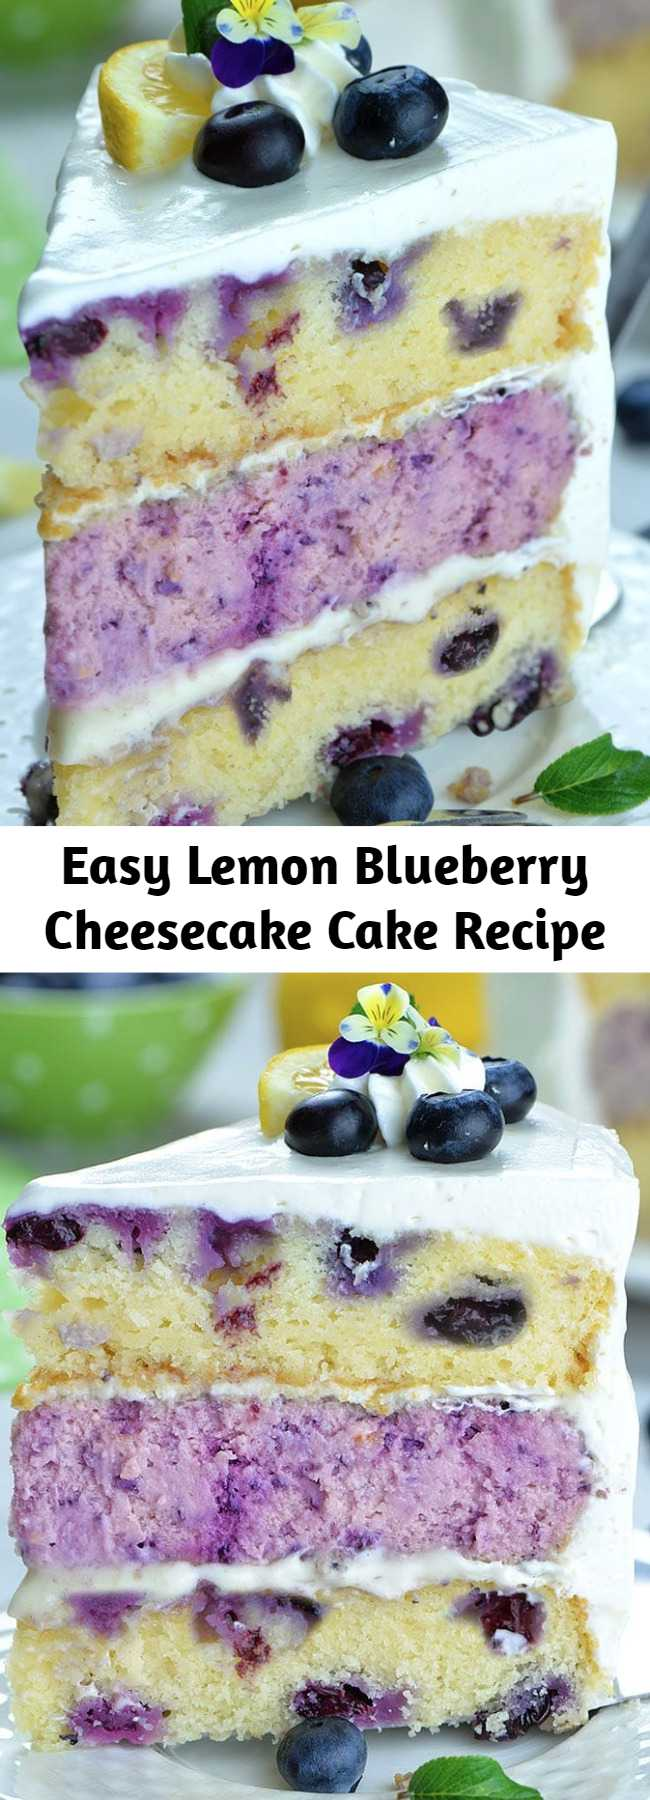 Easy Lemon Blueberry Cheesecake Cake Recipe - Lemon Blueberry Cheesecake Cake the perfect blueberry dessert for spring and summer! Made with a moist lemon cake dotted with juicy blueberries, blueberry cheesecake and sweet and tangy lemon cream cheese frosting.